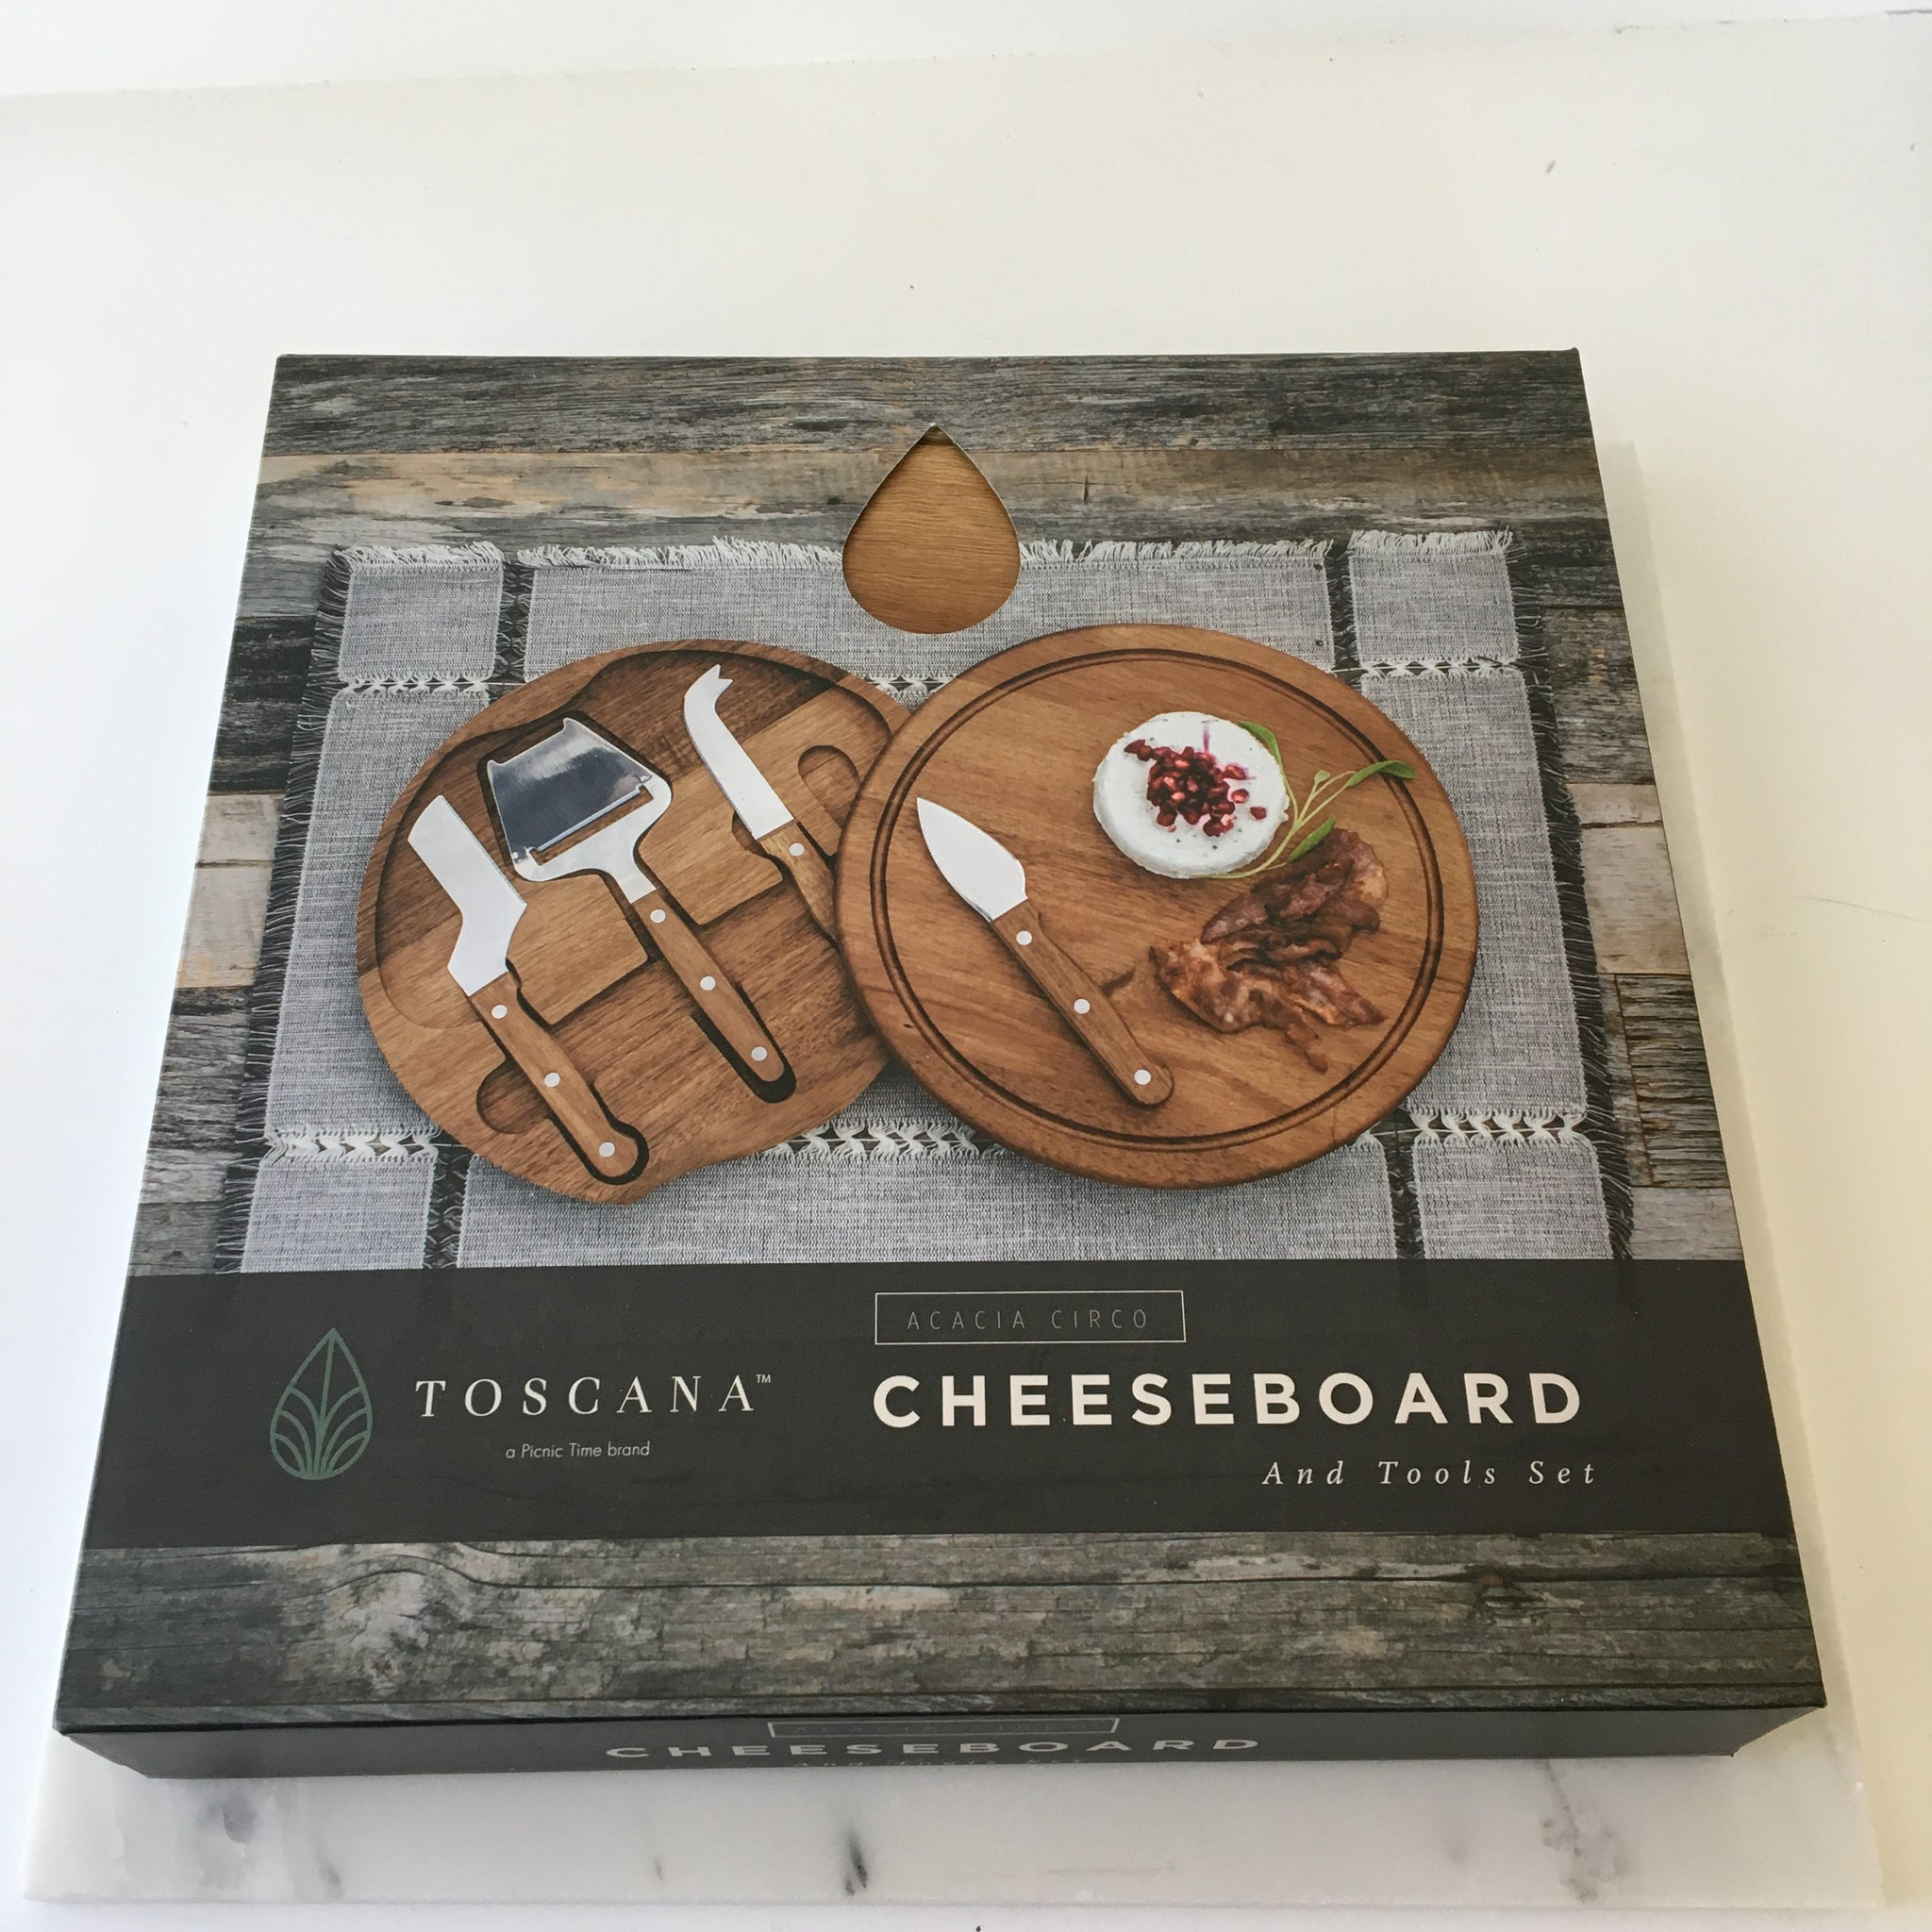 Acacia Brie Cheese Board & Tool Set